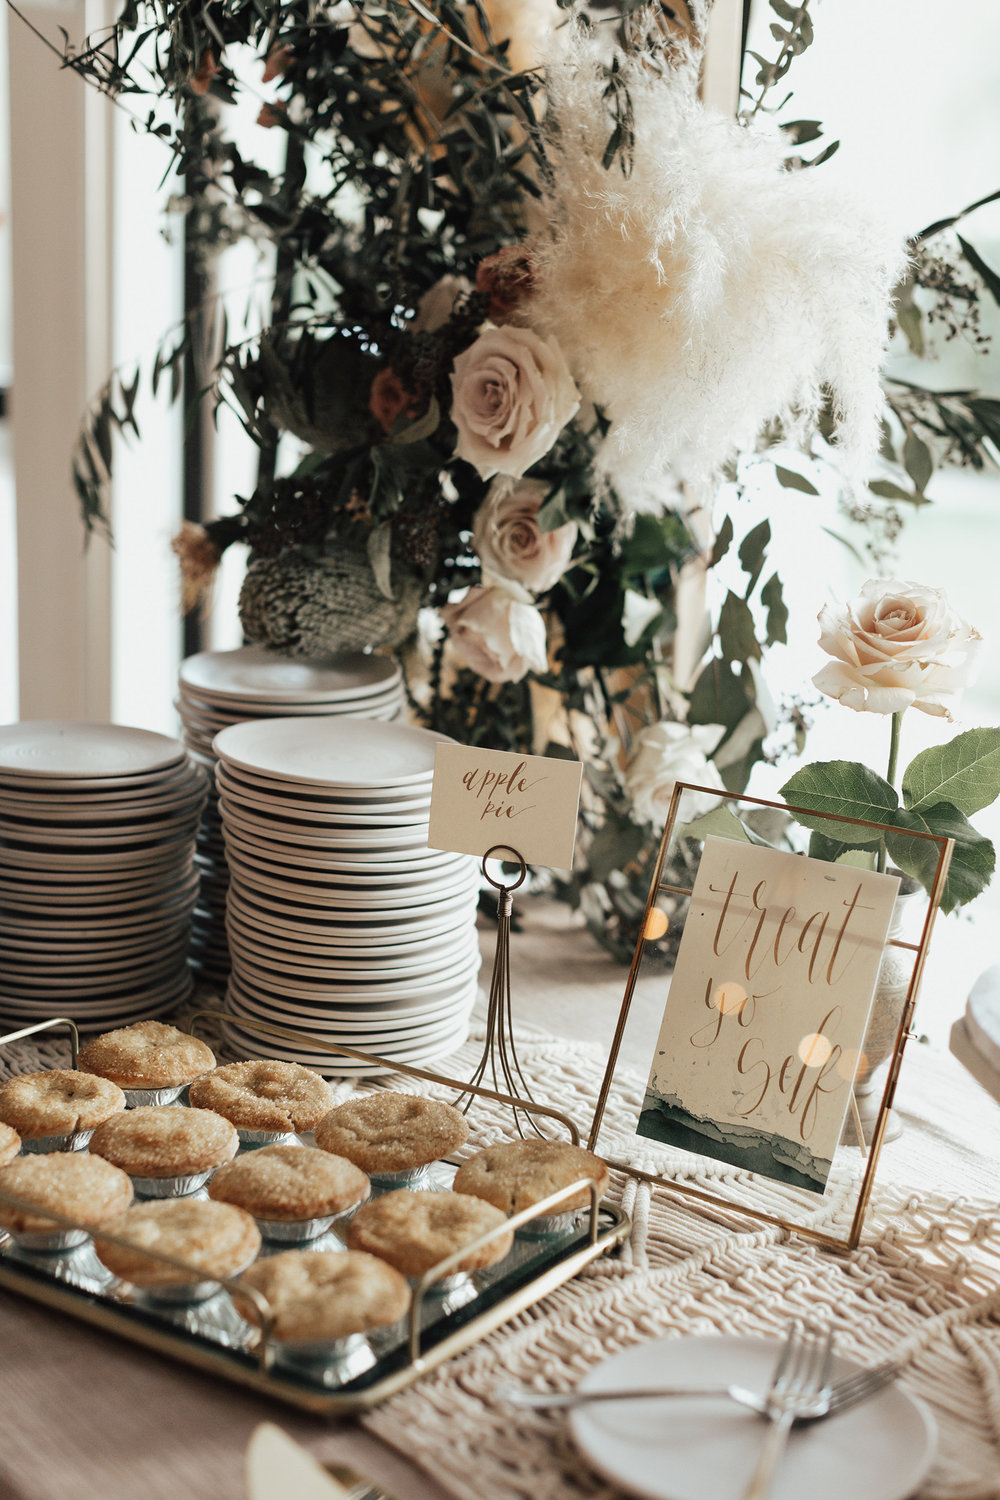 toby+brenna | JUNE 2018  Watercolor place cards and table signage.  CALLIGRAPHY: SAMI SHIROMA  PHOTOGRAPHER:  BROGEN JESSUP   VENUE:  ACE HOTEL & SWIM CLUB